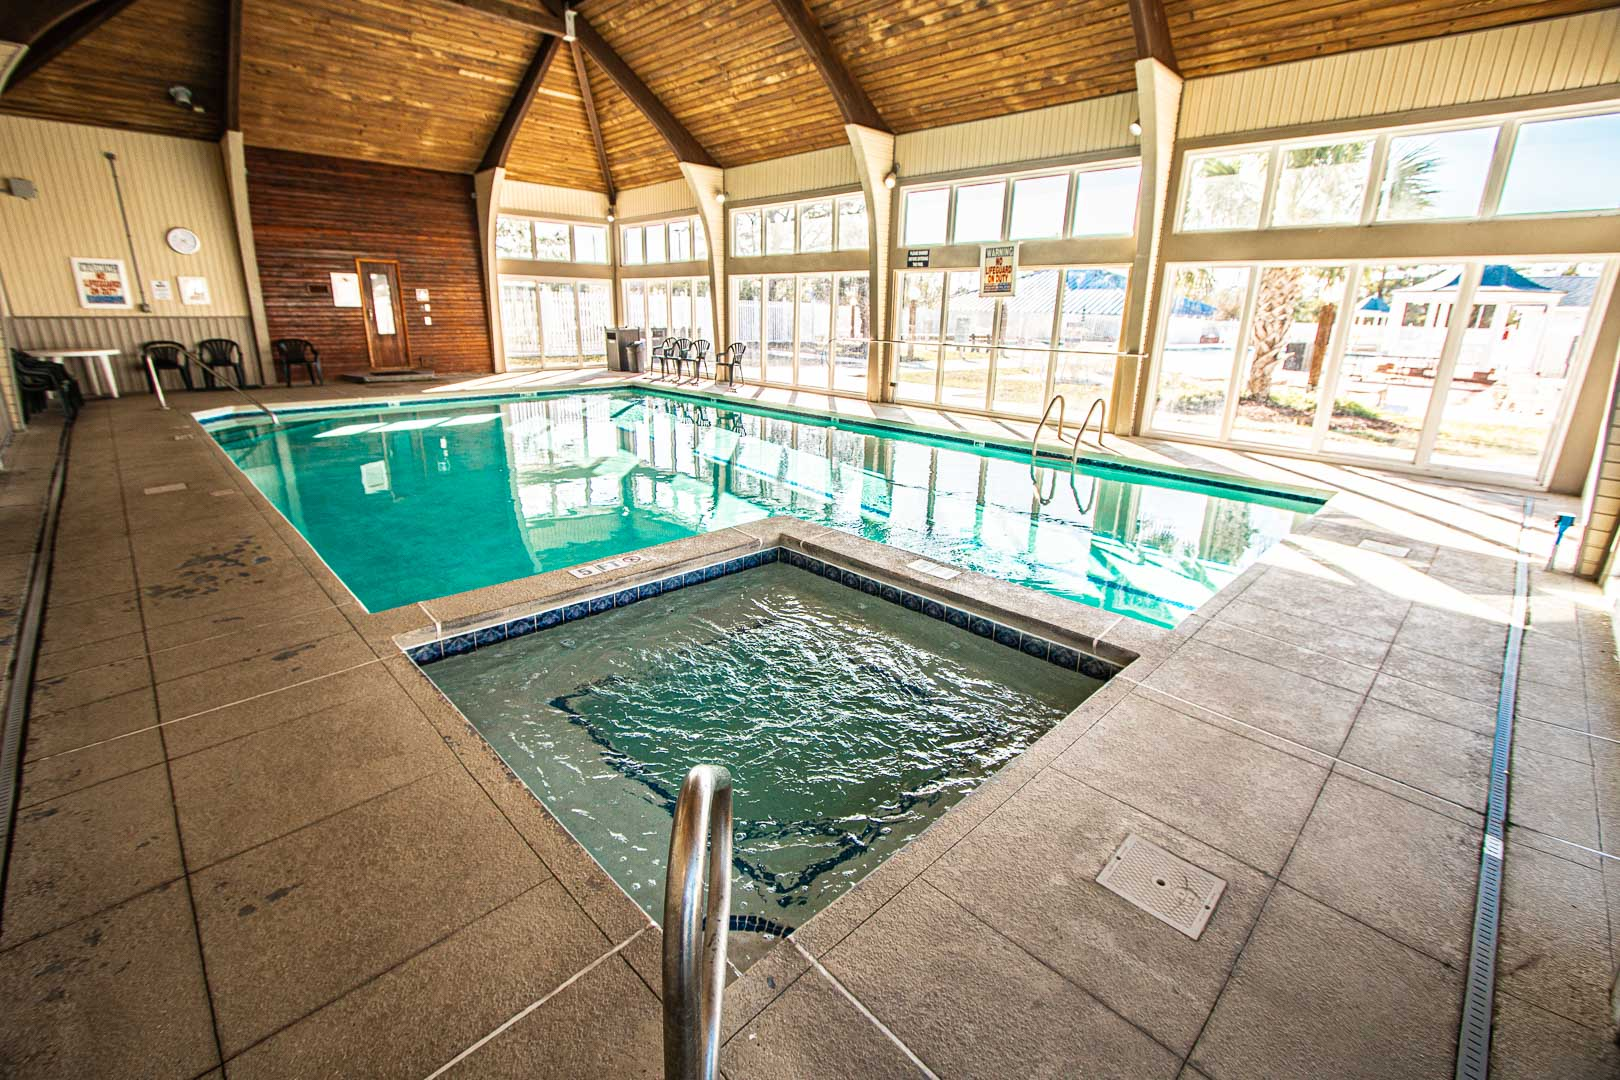 A stoic indoor swimming pool and Jacuzzi tub at VRI's Harbourside II in New Bern, North Carolina.